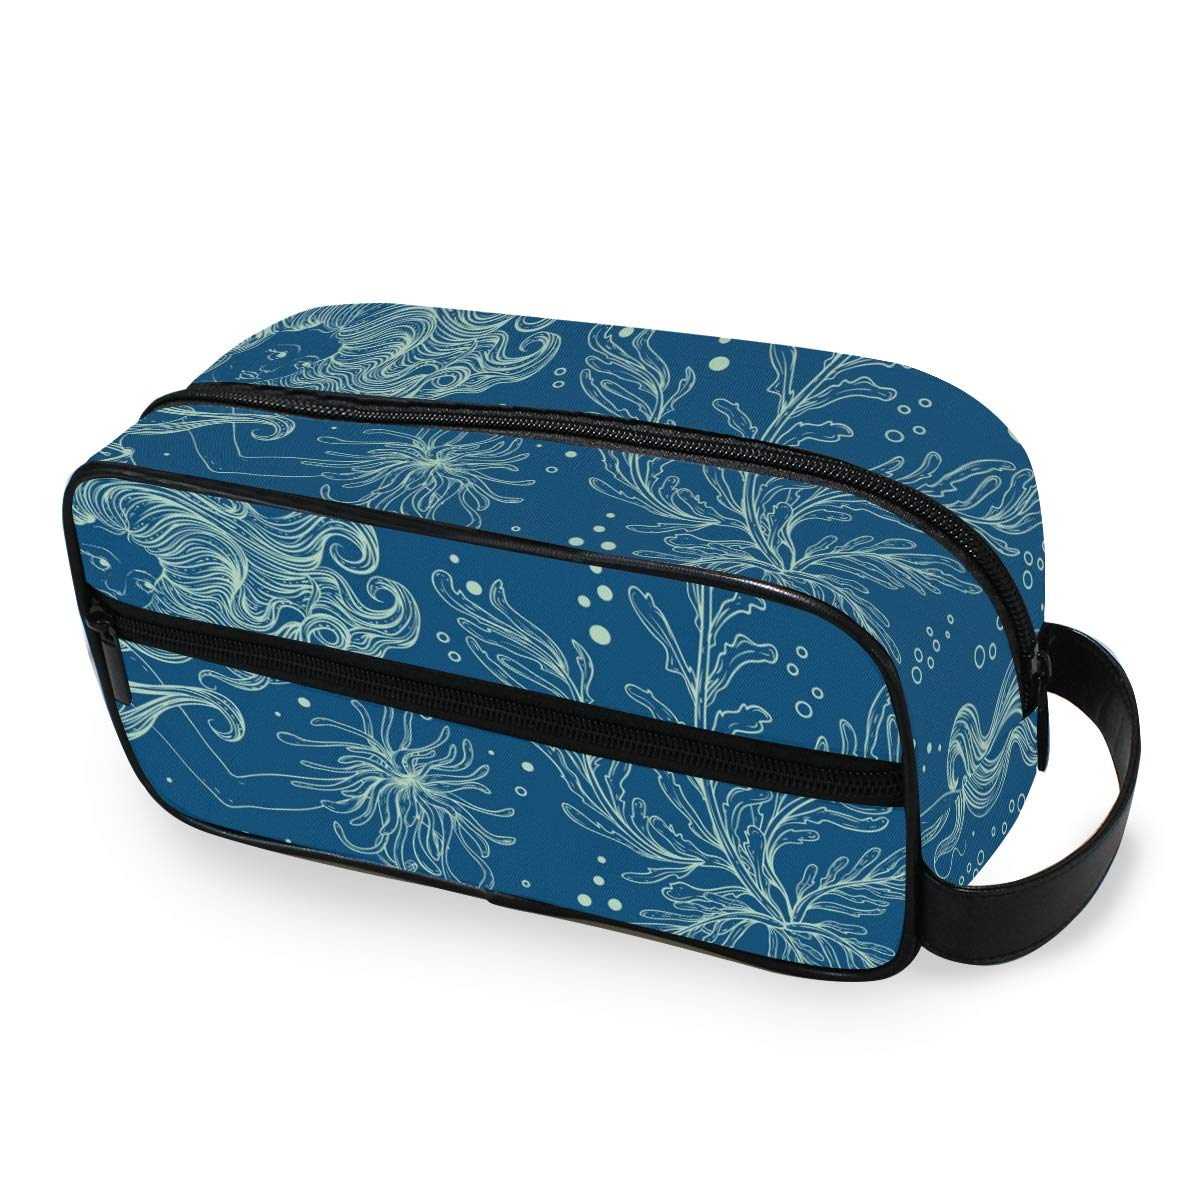 Cosmetic Bag Makeup Case Mermaid Marine Plants Corals And Seaweed Portable Toiletry Bag Organizer Accessories Case Tools Case for Trave